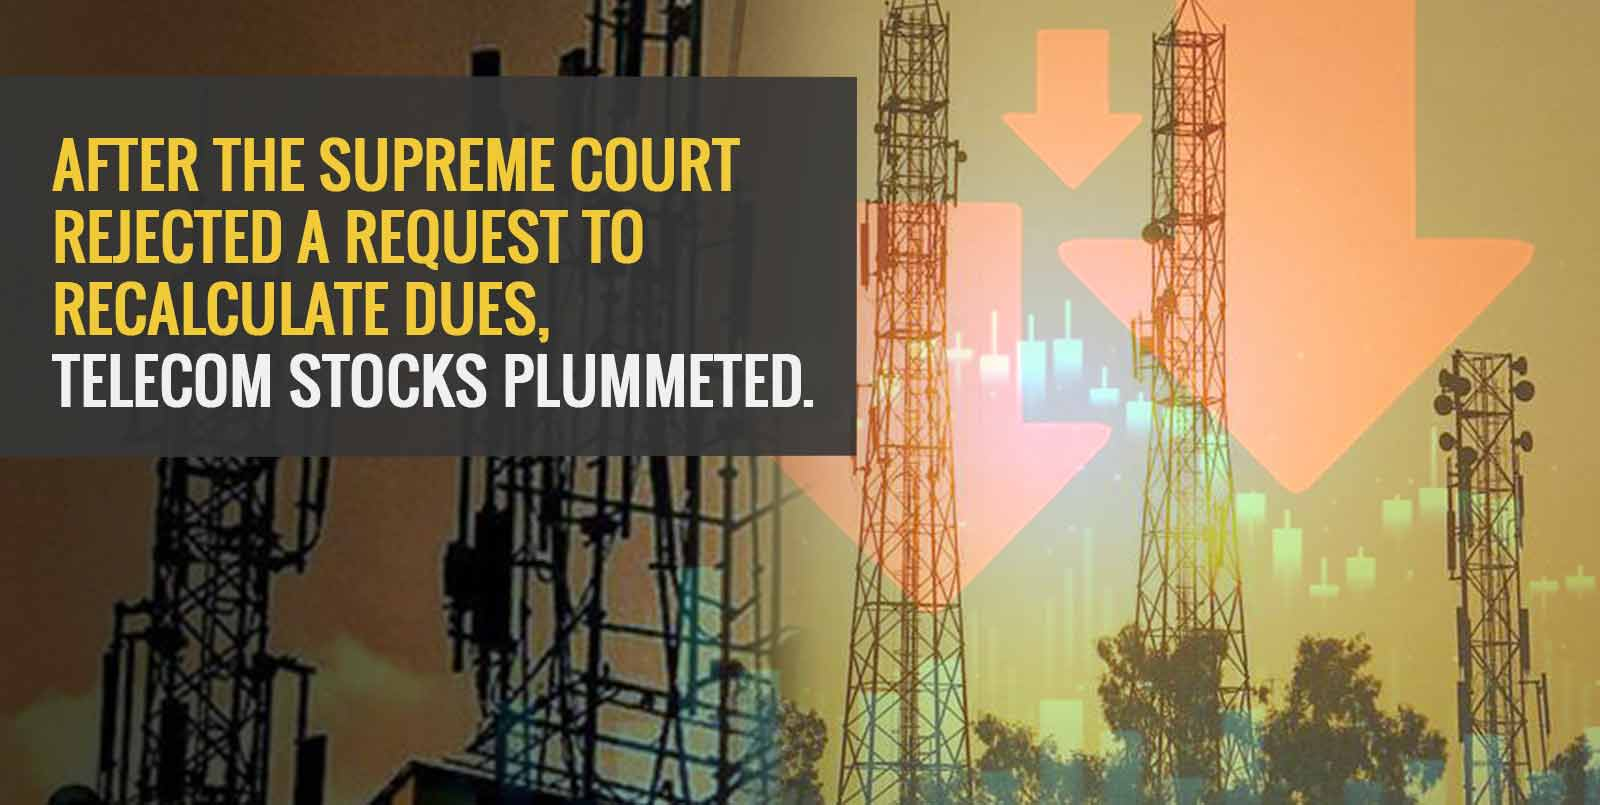 After the Supreme Court rejected a request to recalculate dues, telecom stocks plummeted